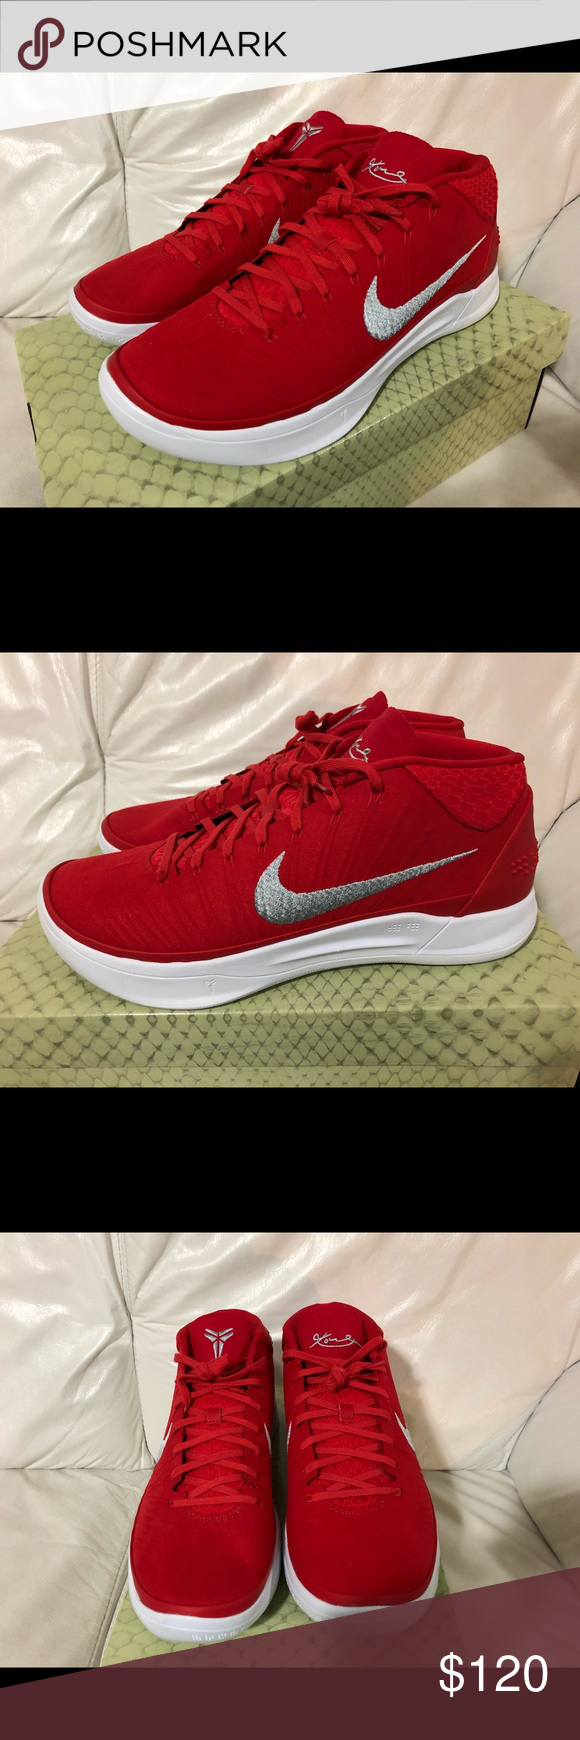 d2f37cf44102 Nike Kobe AD TB Promo Red Silver New Nike Kobe AD TB Promo University Red   Metallic  Silver Men s Size 12 New w   Box. Nike Shoes Sneakers